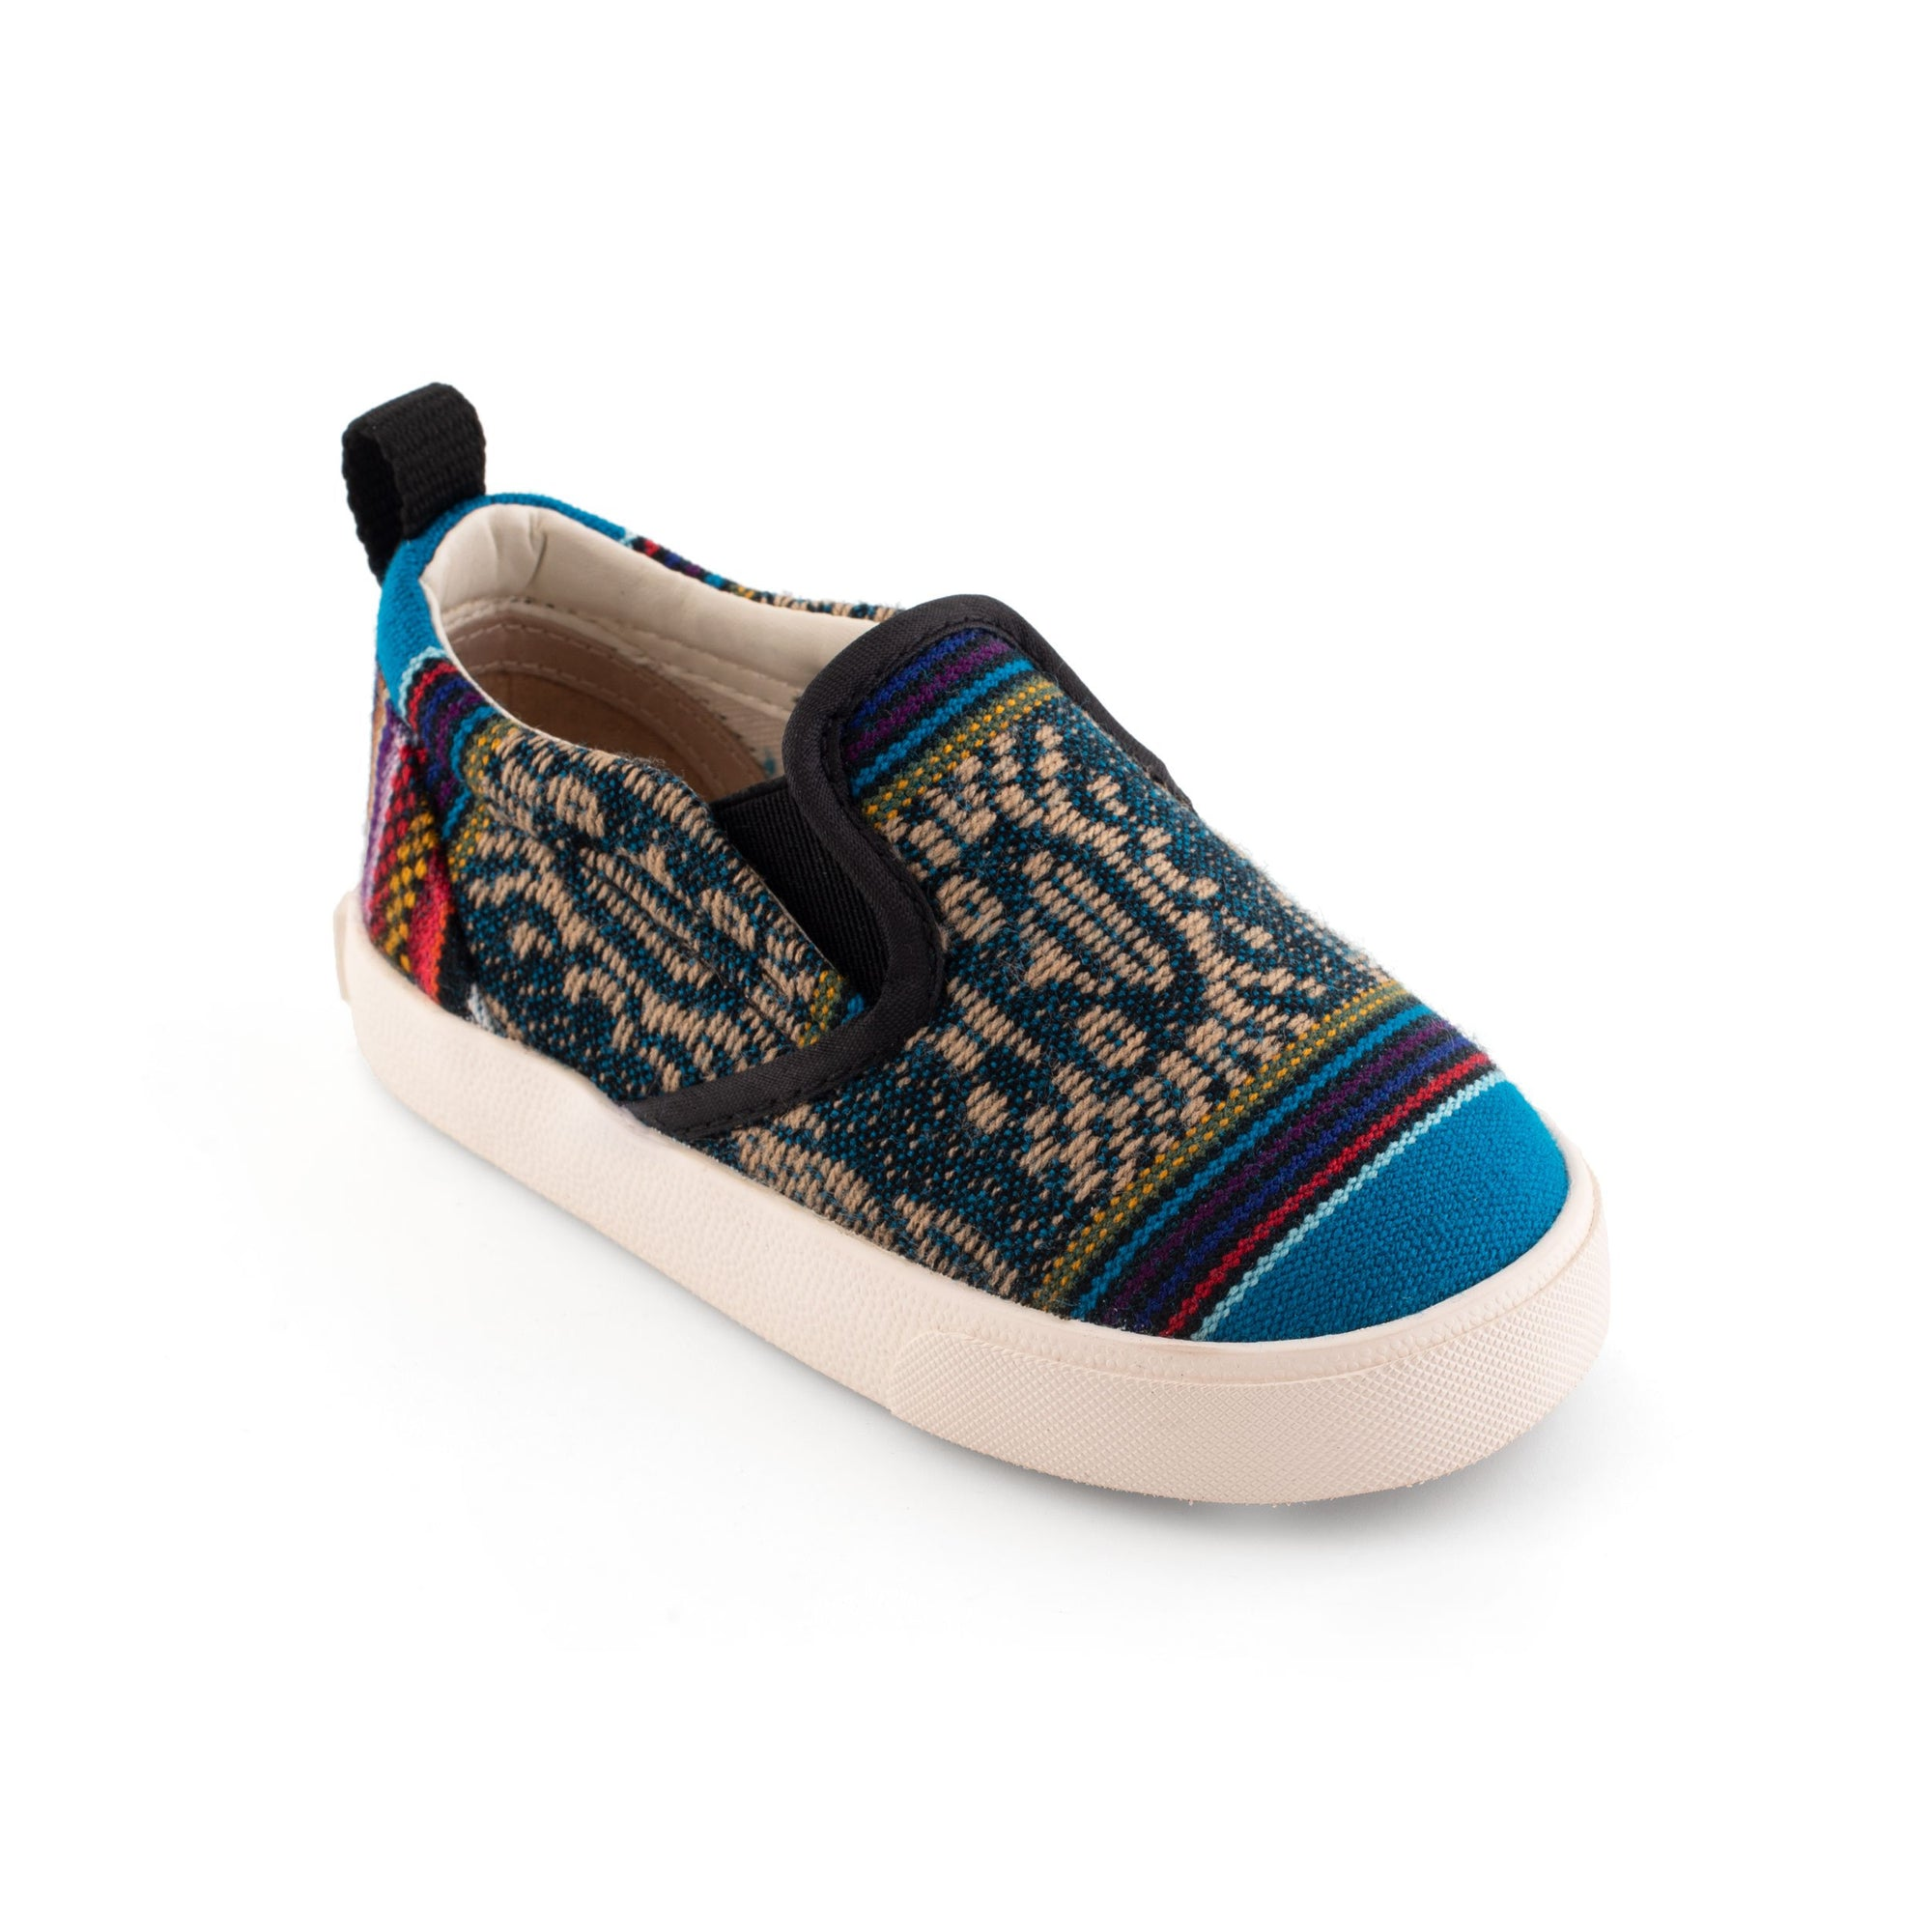 Bluebird Slip On - KIDS - ML Footwear